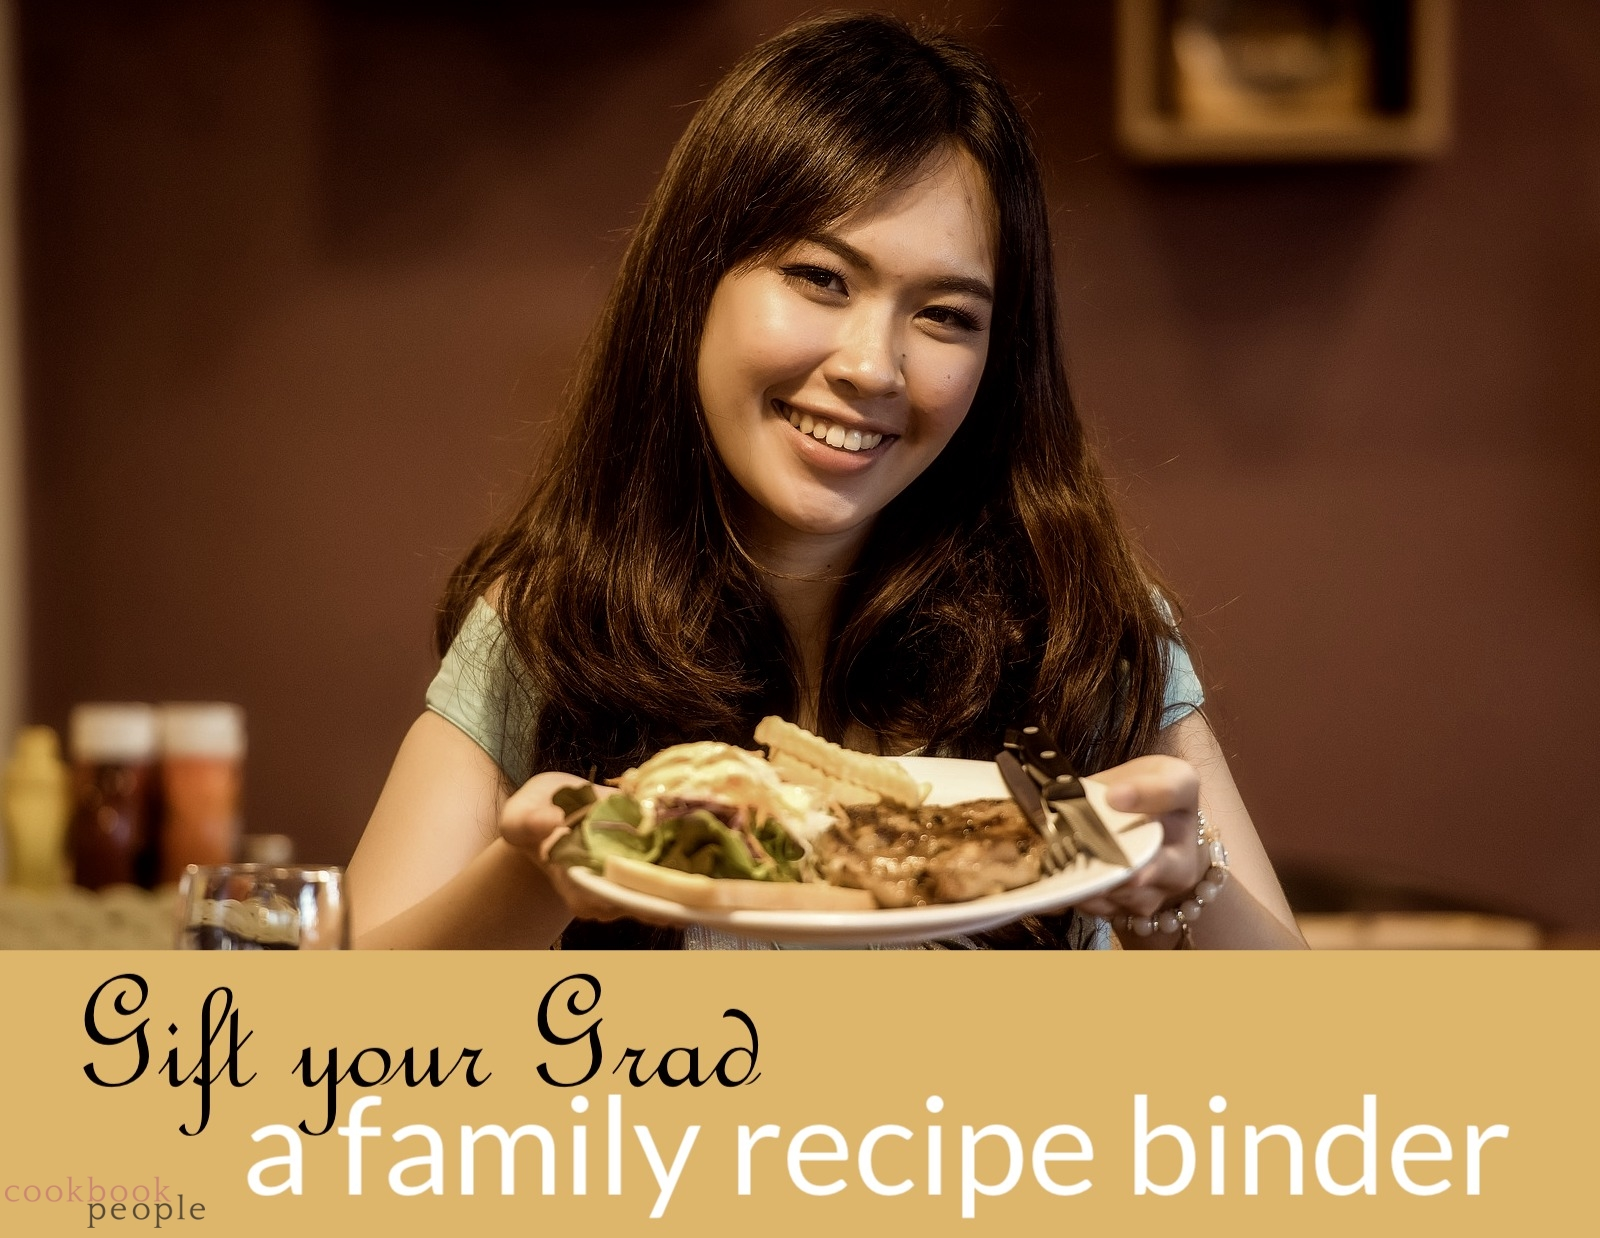 Gift your grad a family recipe binder